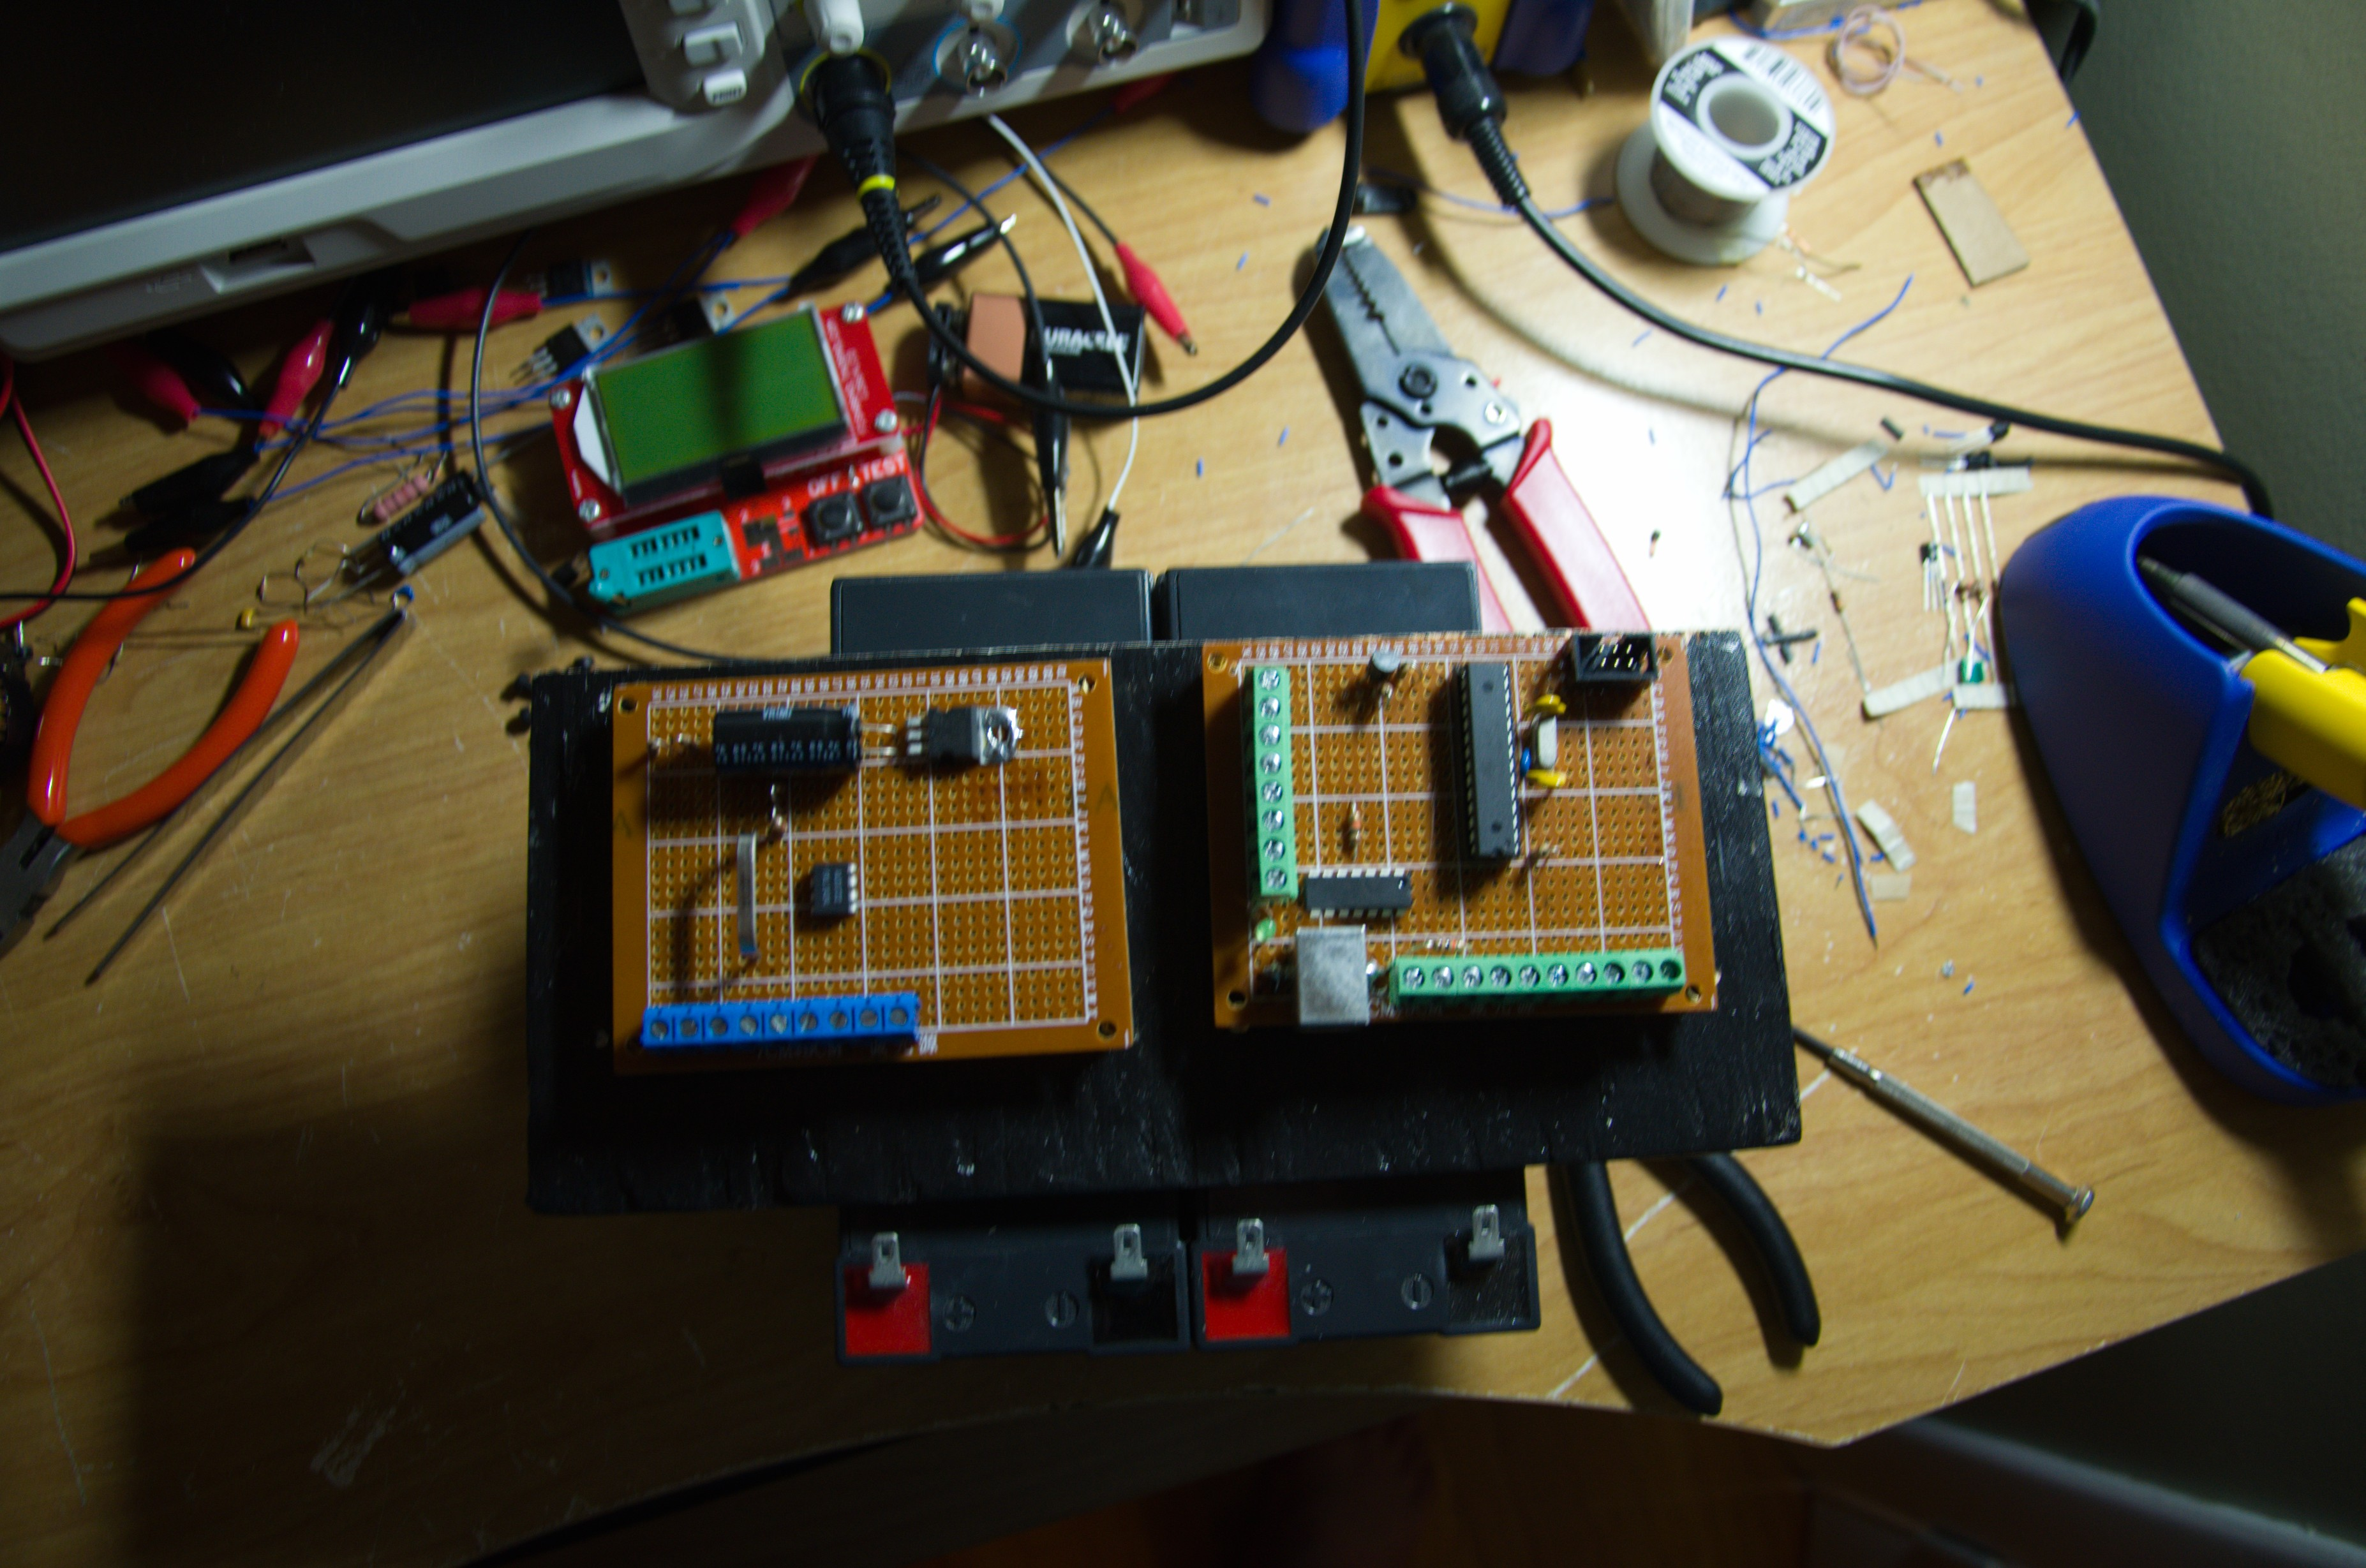 Show Your Prototype Board Page 1 On Off Latching Relay Circuit To Calibrate Voltage Shut Threshold Etc Theres A That Will The Whole System Down At Set Point Protect Battery